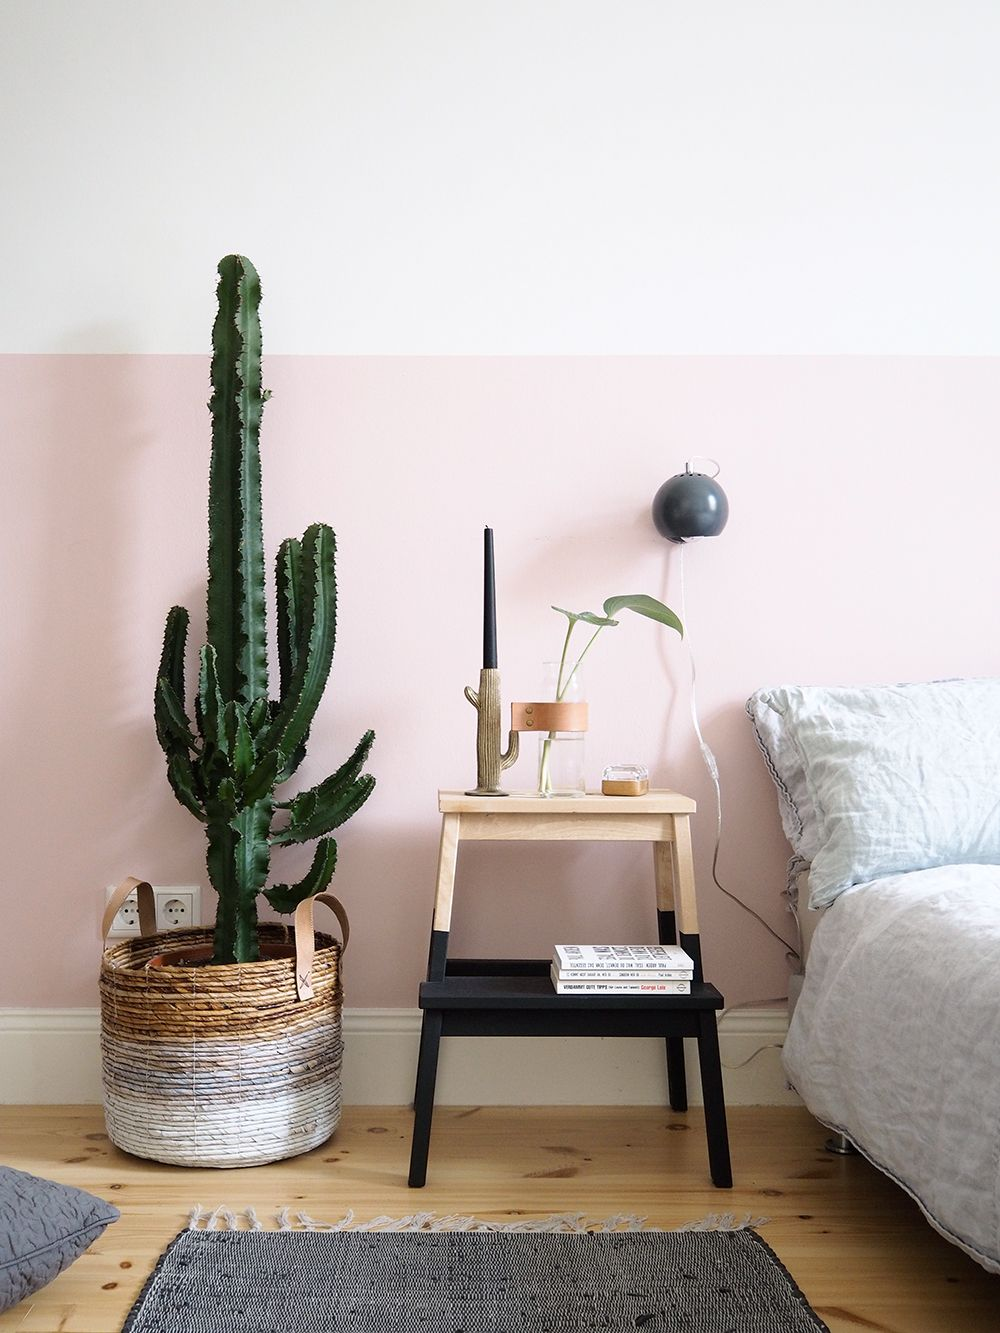 Mood Board Best Ways to Use Pale Pink in Your Home Decor 1  Mood Board: Best Ways to Use Pale Pink in Your Home Decor Mood Board Best Ways to Use Pale Pink in Your Home Decor 5